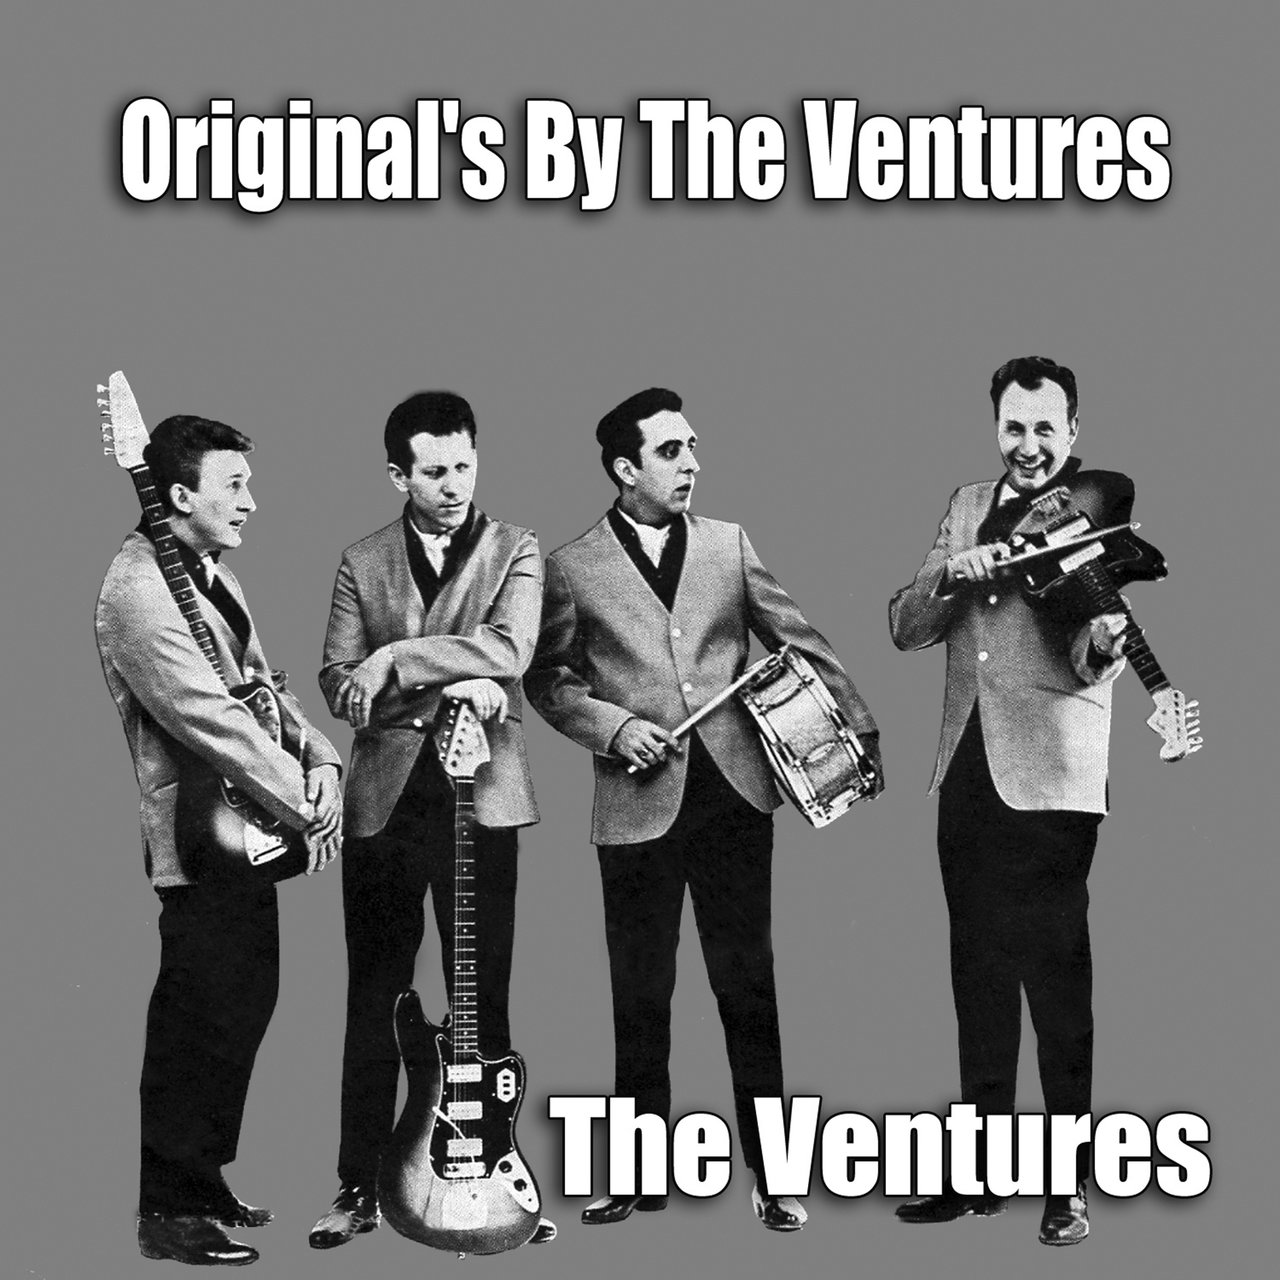 Original's By The Ventures